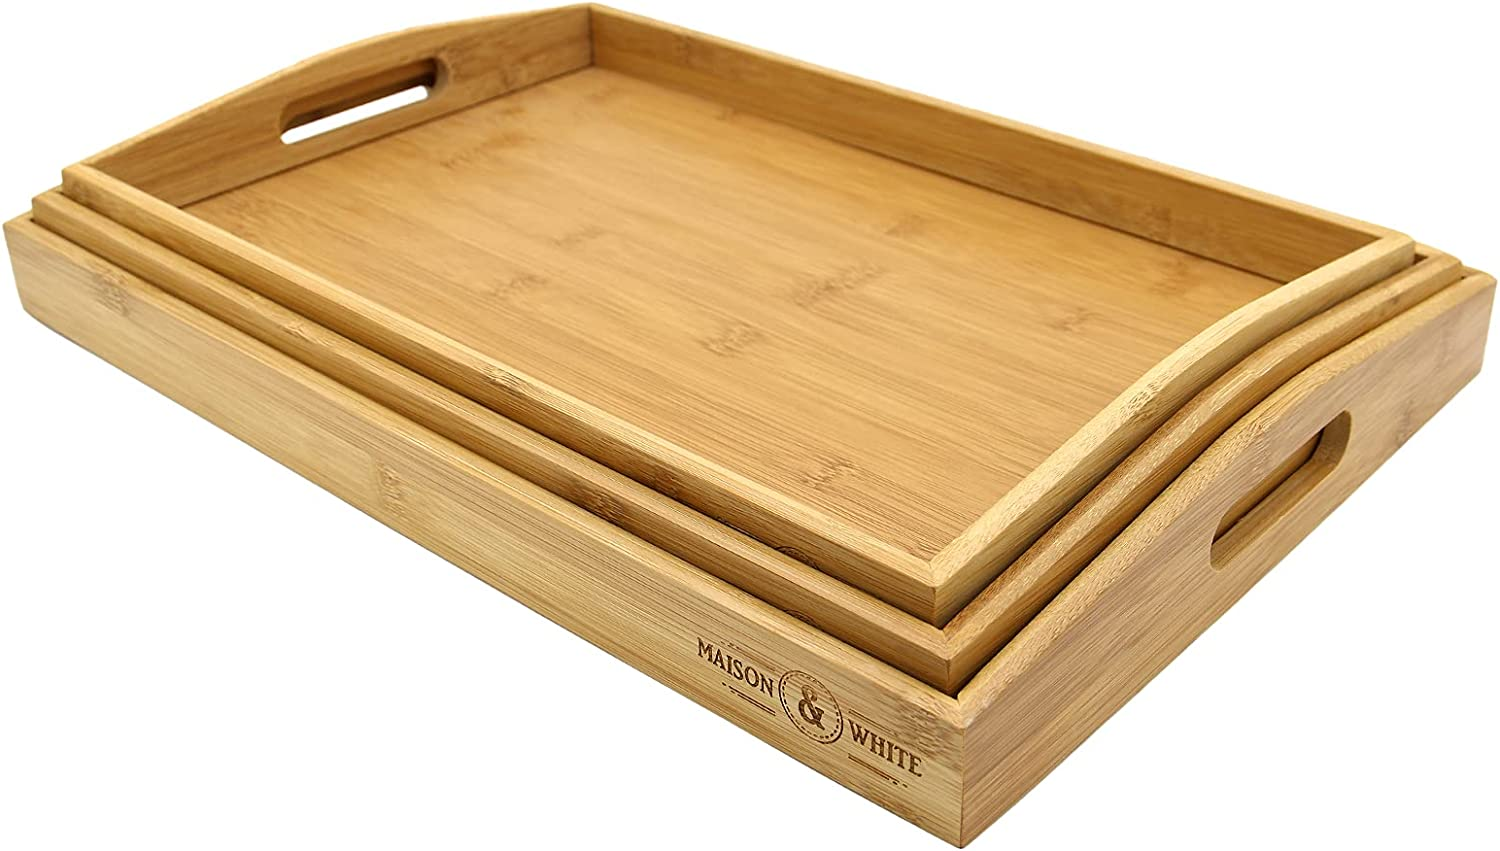 Yuehuam 3 Pack Bamboo Serving with Hnadle Tray Bombing free shipping mart Breakfas Portable